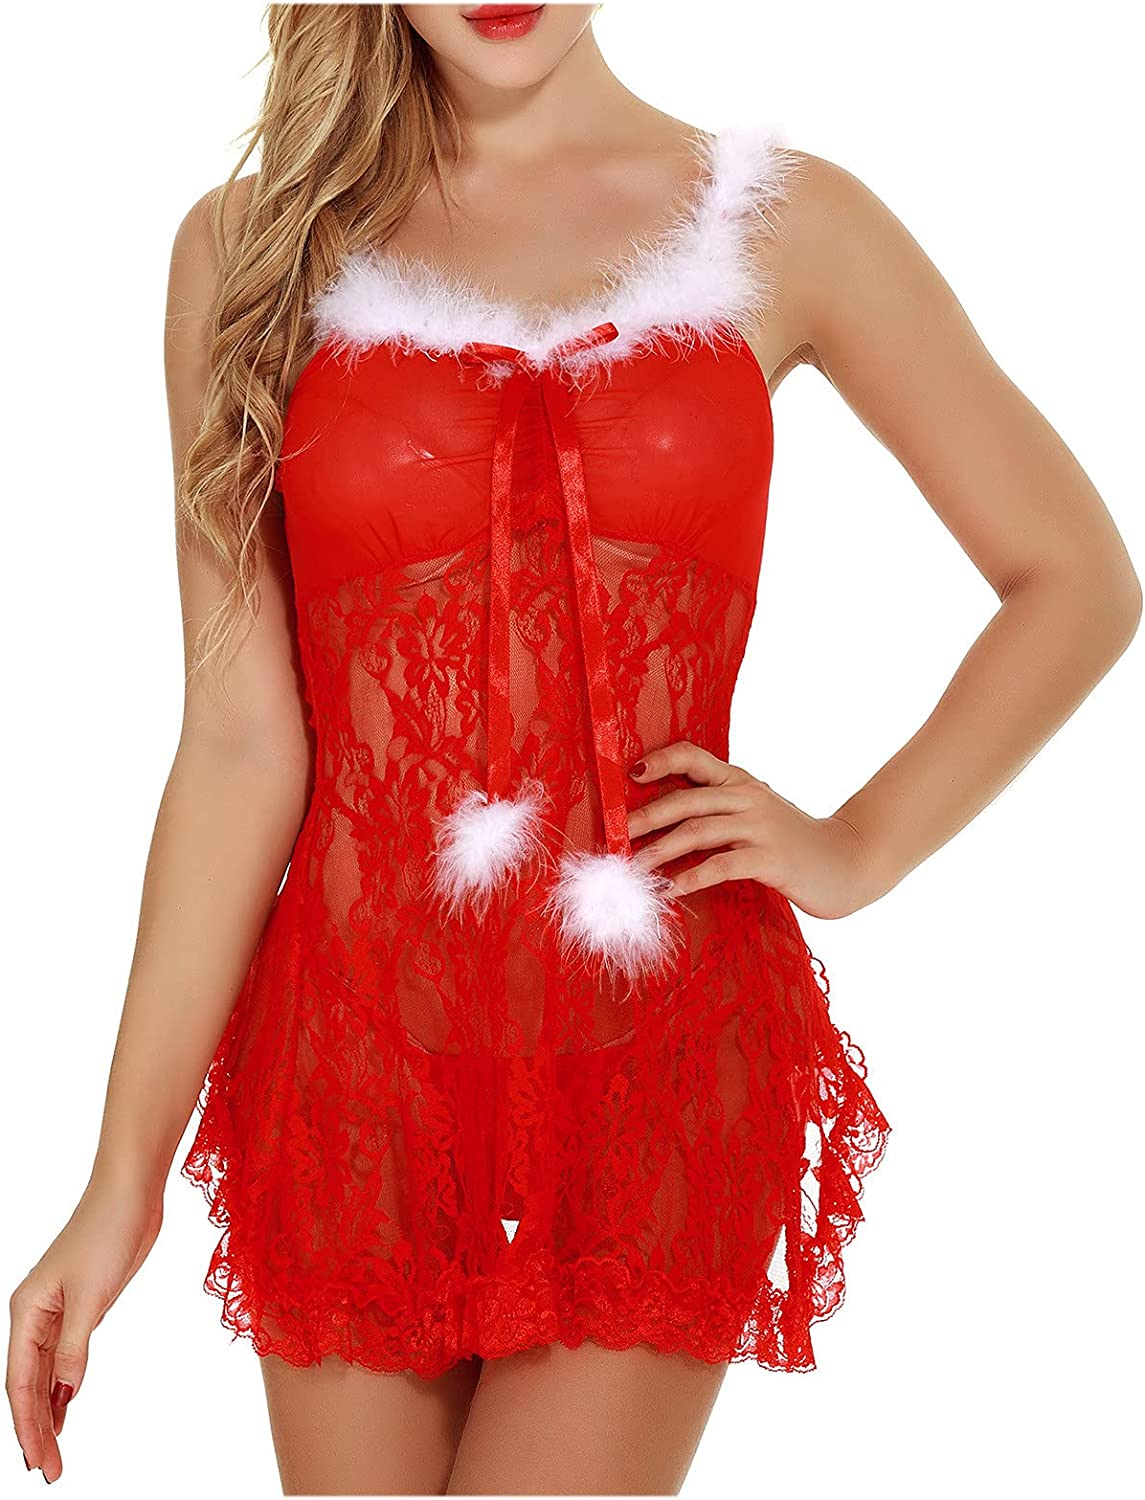 wodceeke Christmas Red Lace Mesh Sling Teddy Nightdress Babydoll See Through Pajamas Sexy Plus Size Lingerie for Women Sex